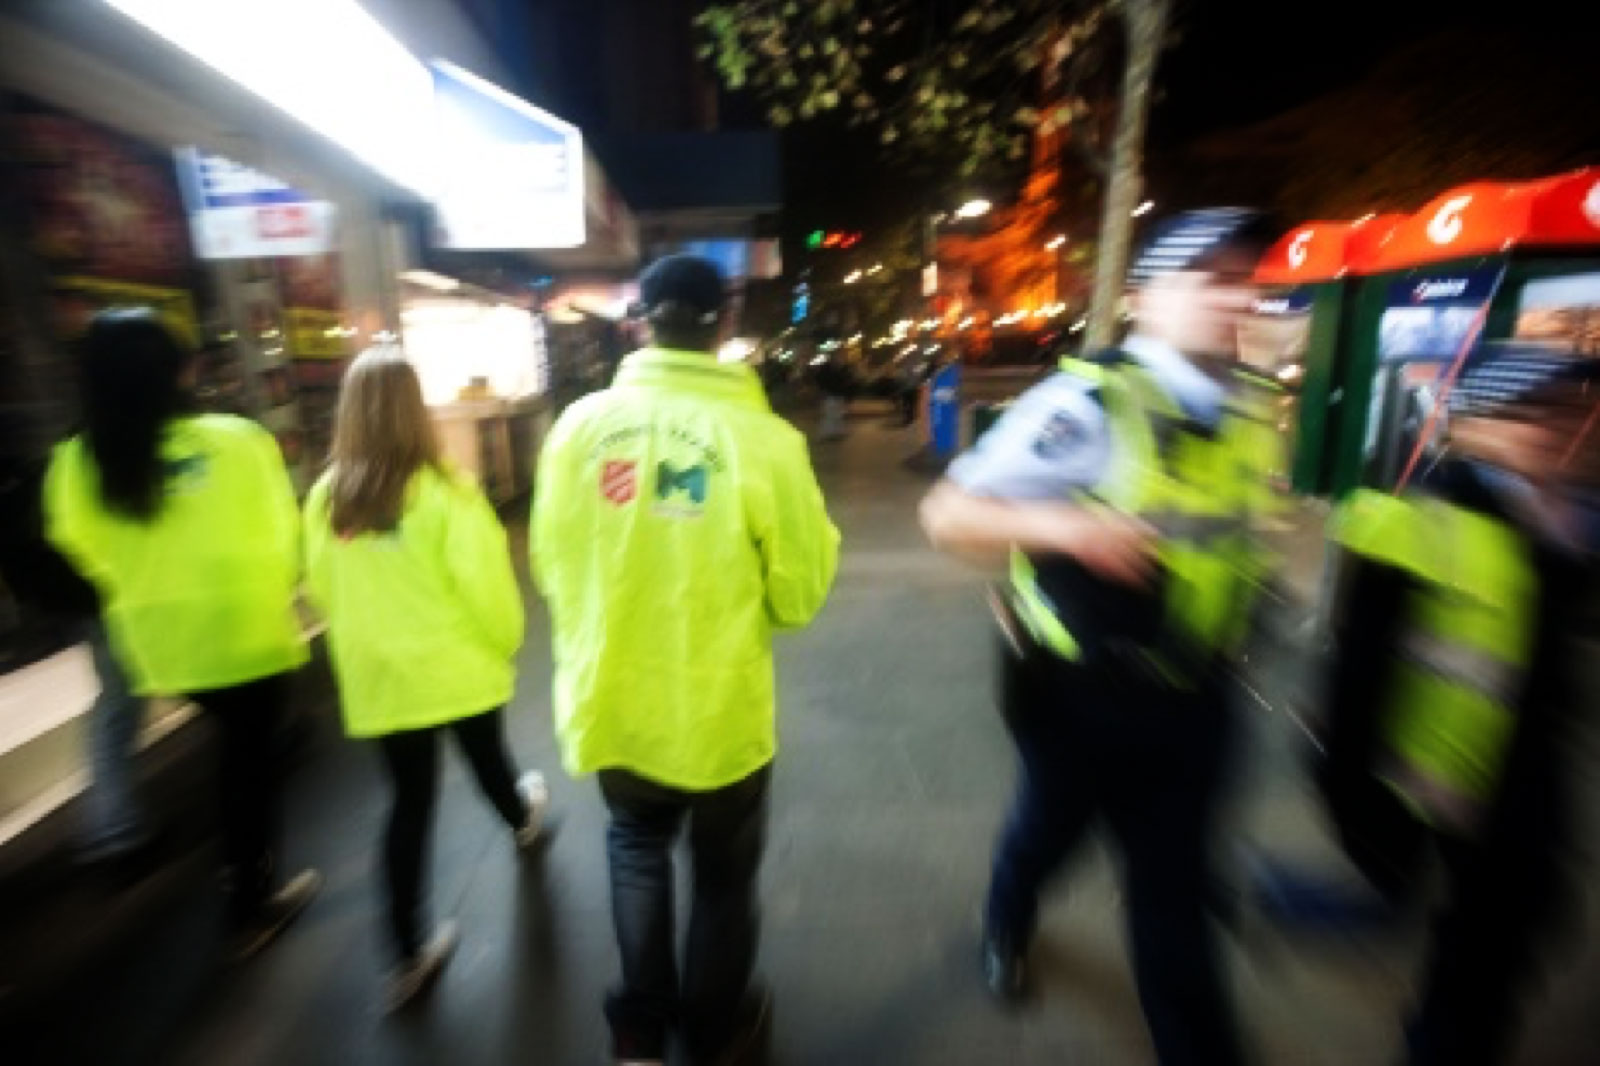 Vounteer teams in Melbourne CBD